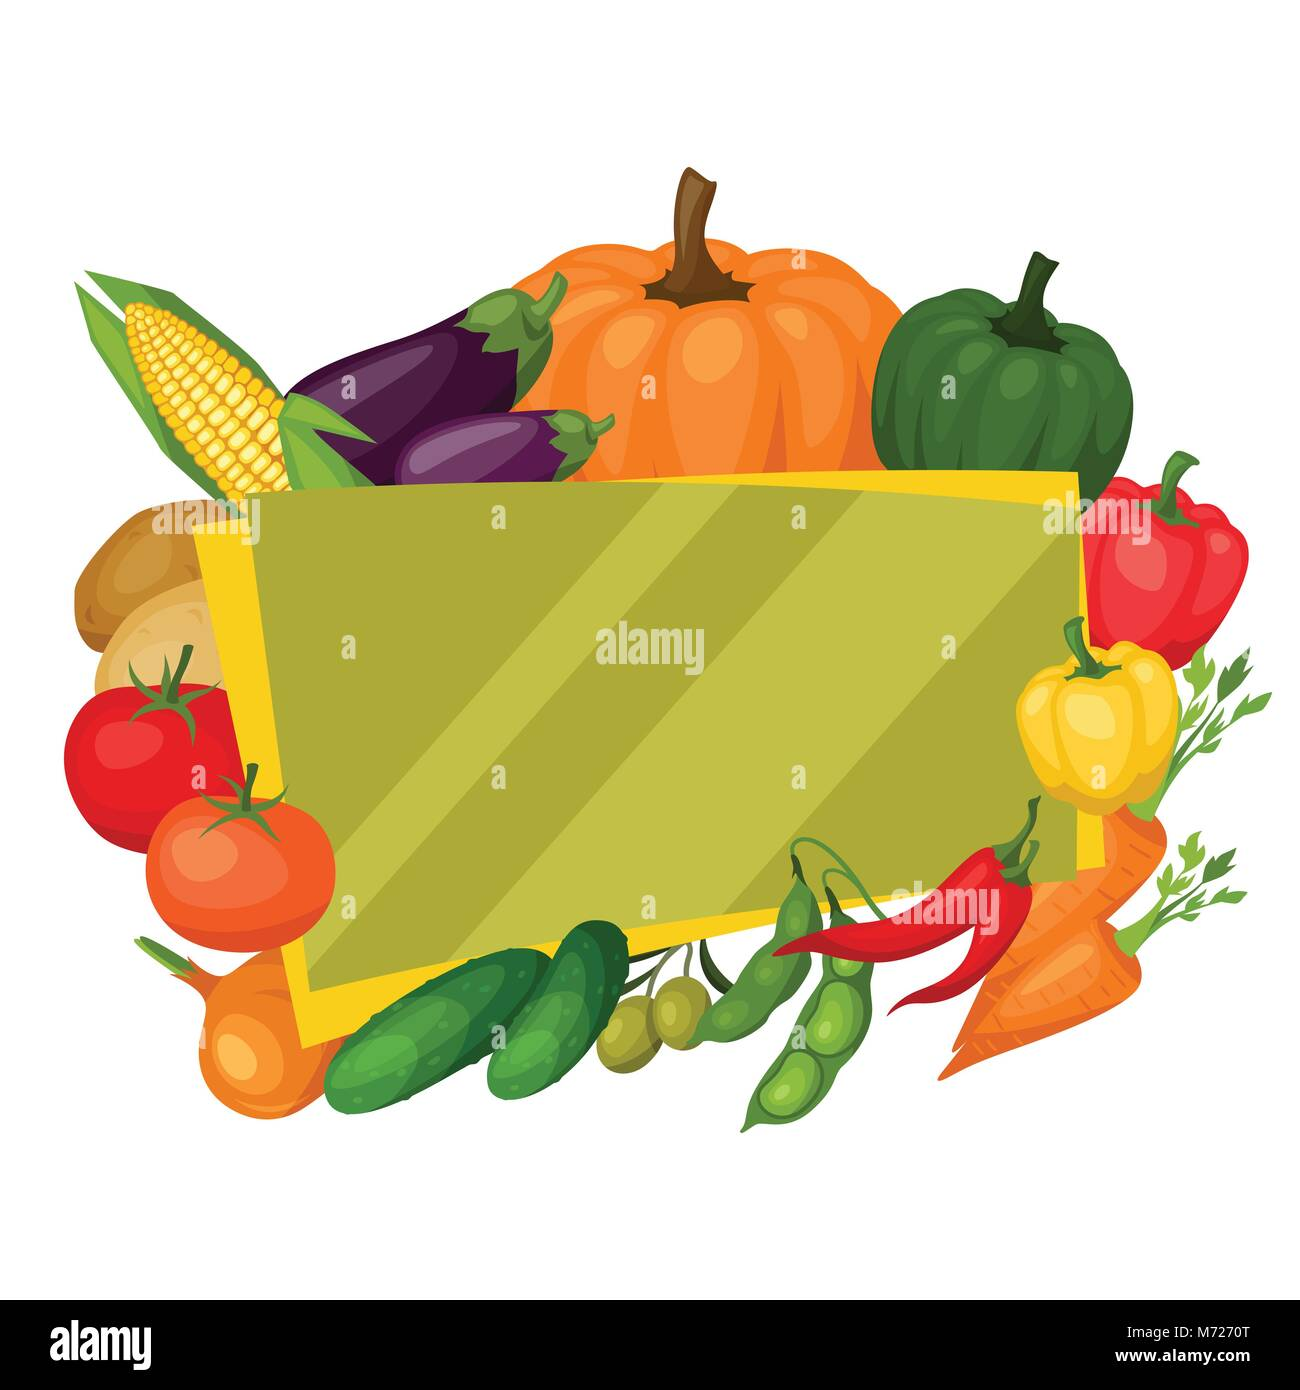 Background design with fresh ripe stylized vegetables - Stock Vector